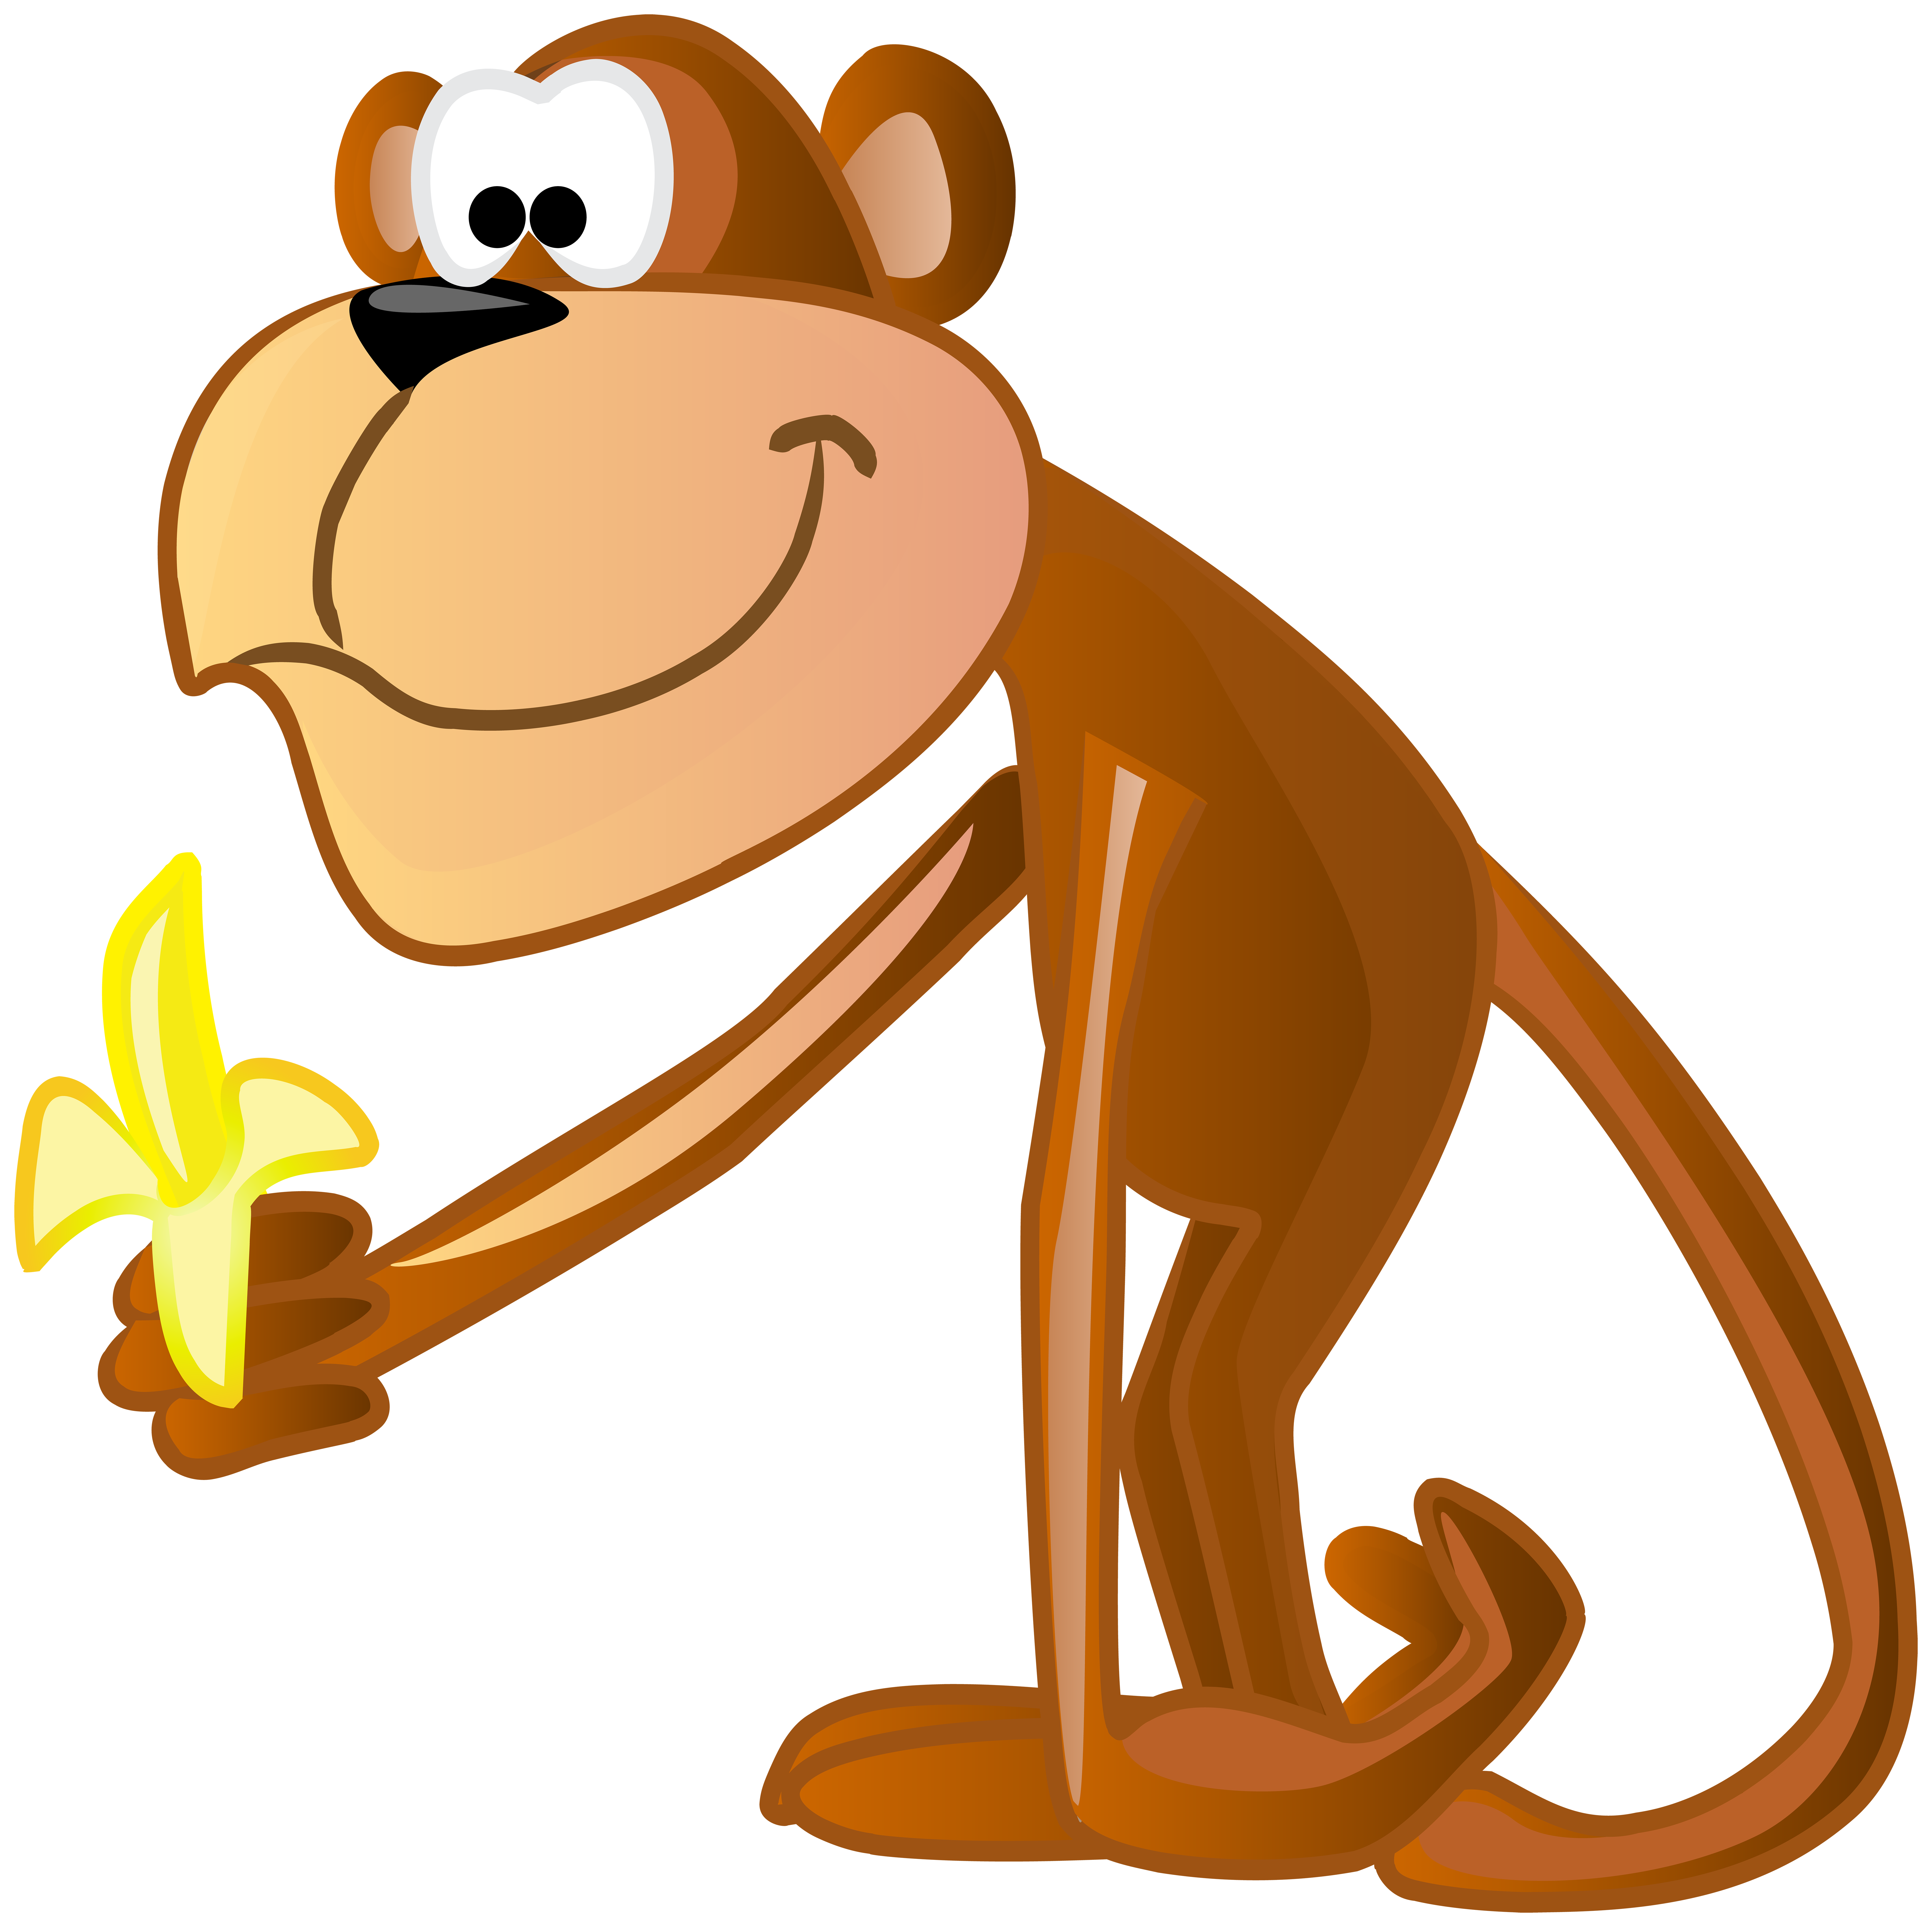 Monkey on tree clipart graphic transparent Monkey Clipart For Kids at GetDrawings.com | Free for personal use ... graphic transparent